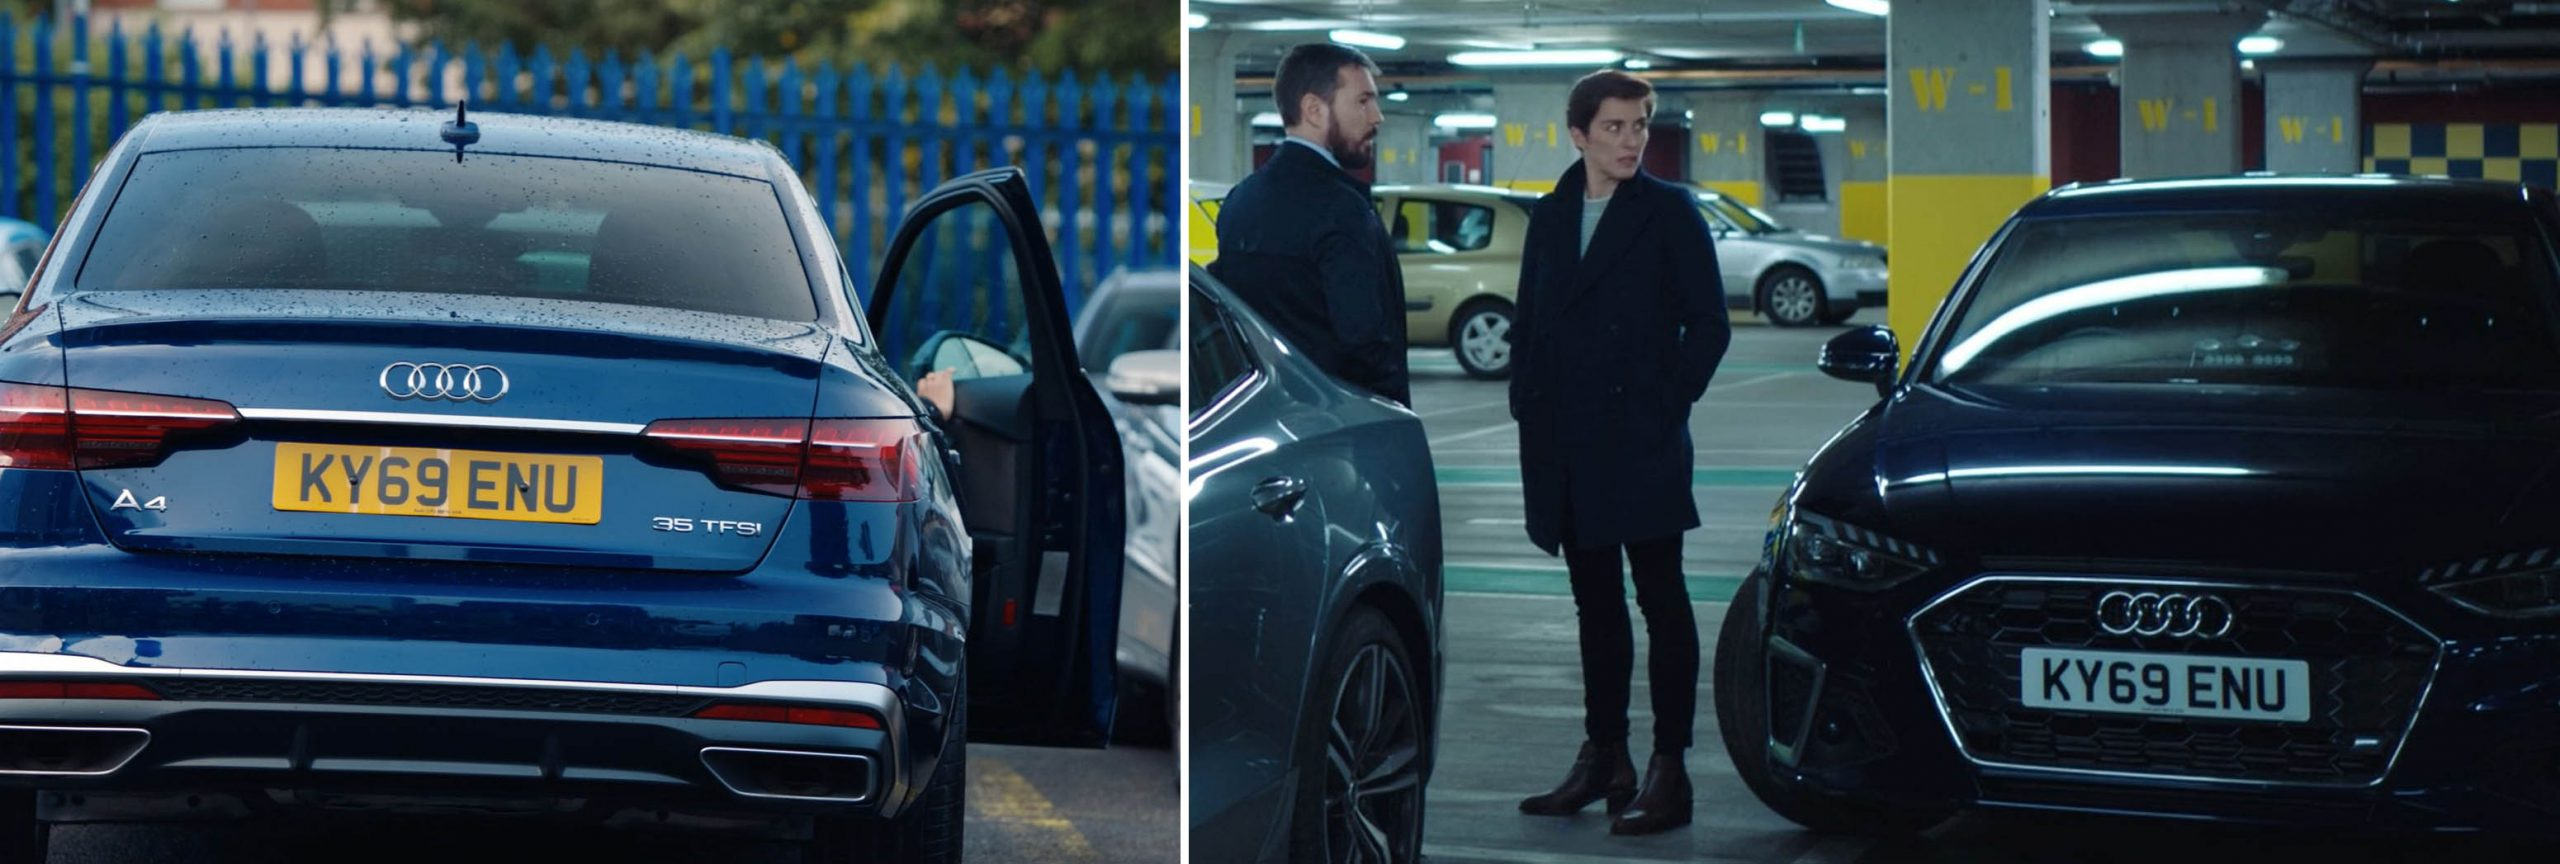 Audi product placement in season 6 of LINE OF DUTY